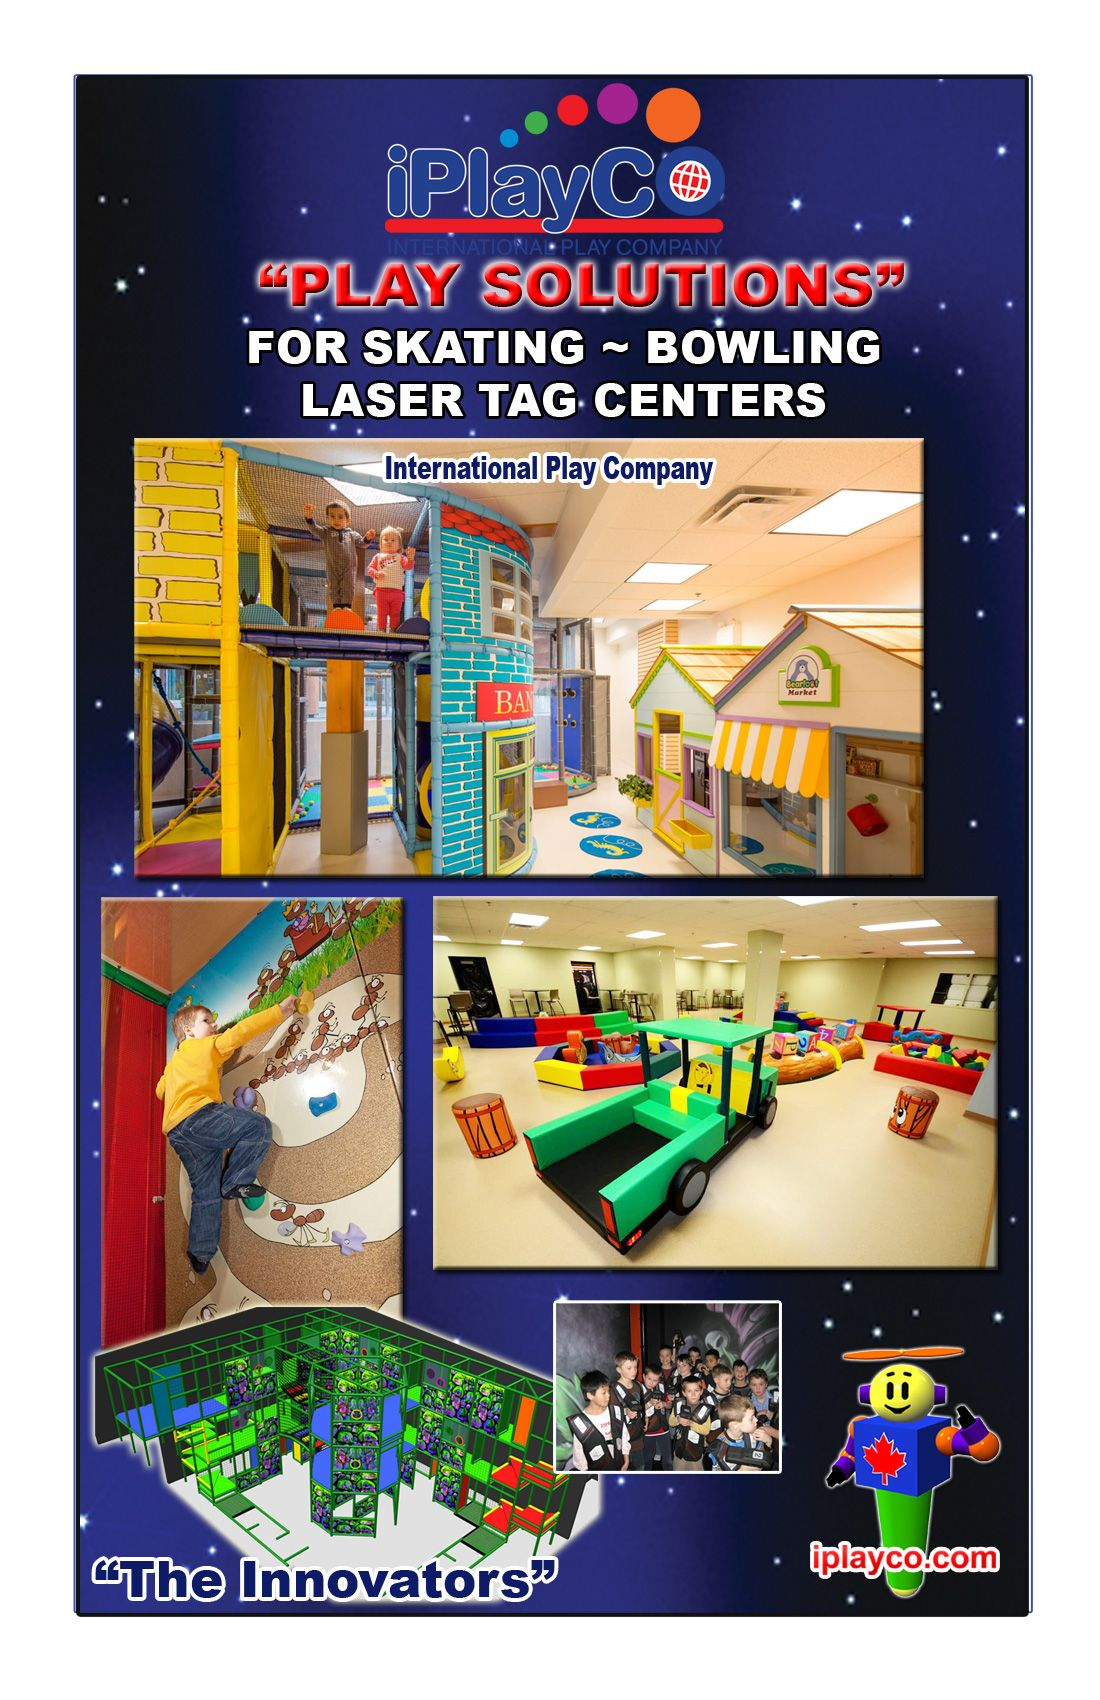 Skating Rinks Roller Rinks Laser Tag Centers Play Solutions For Your Business Commercial Indoor Playground Kids Play Equipment Indoor Playground Equipment